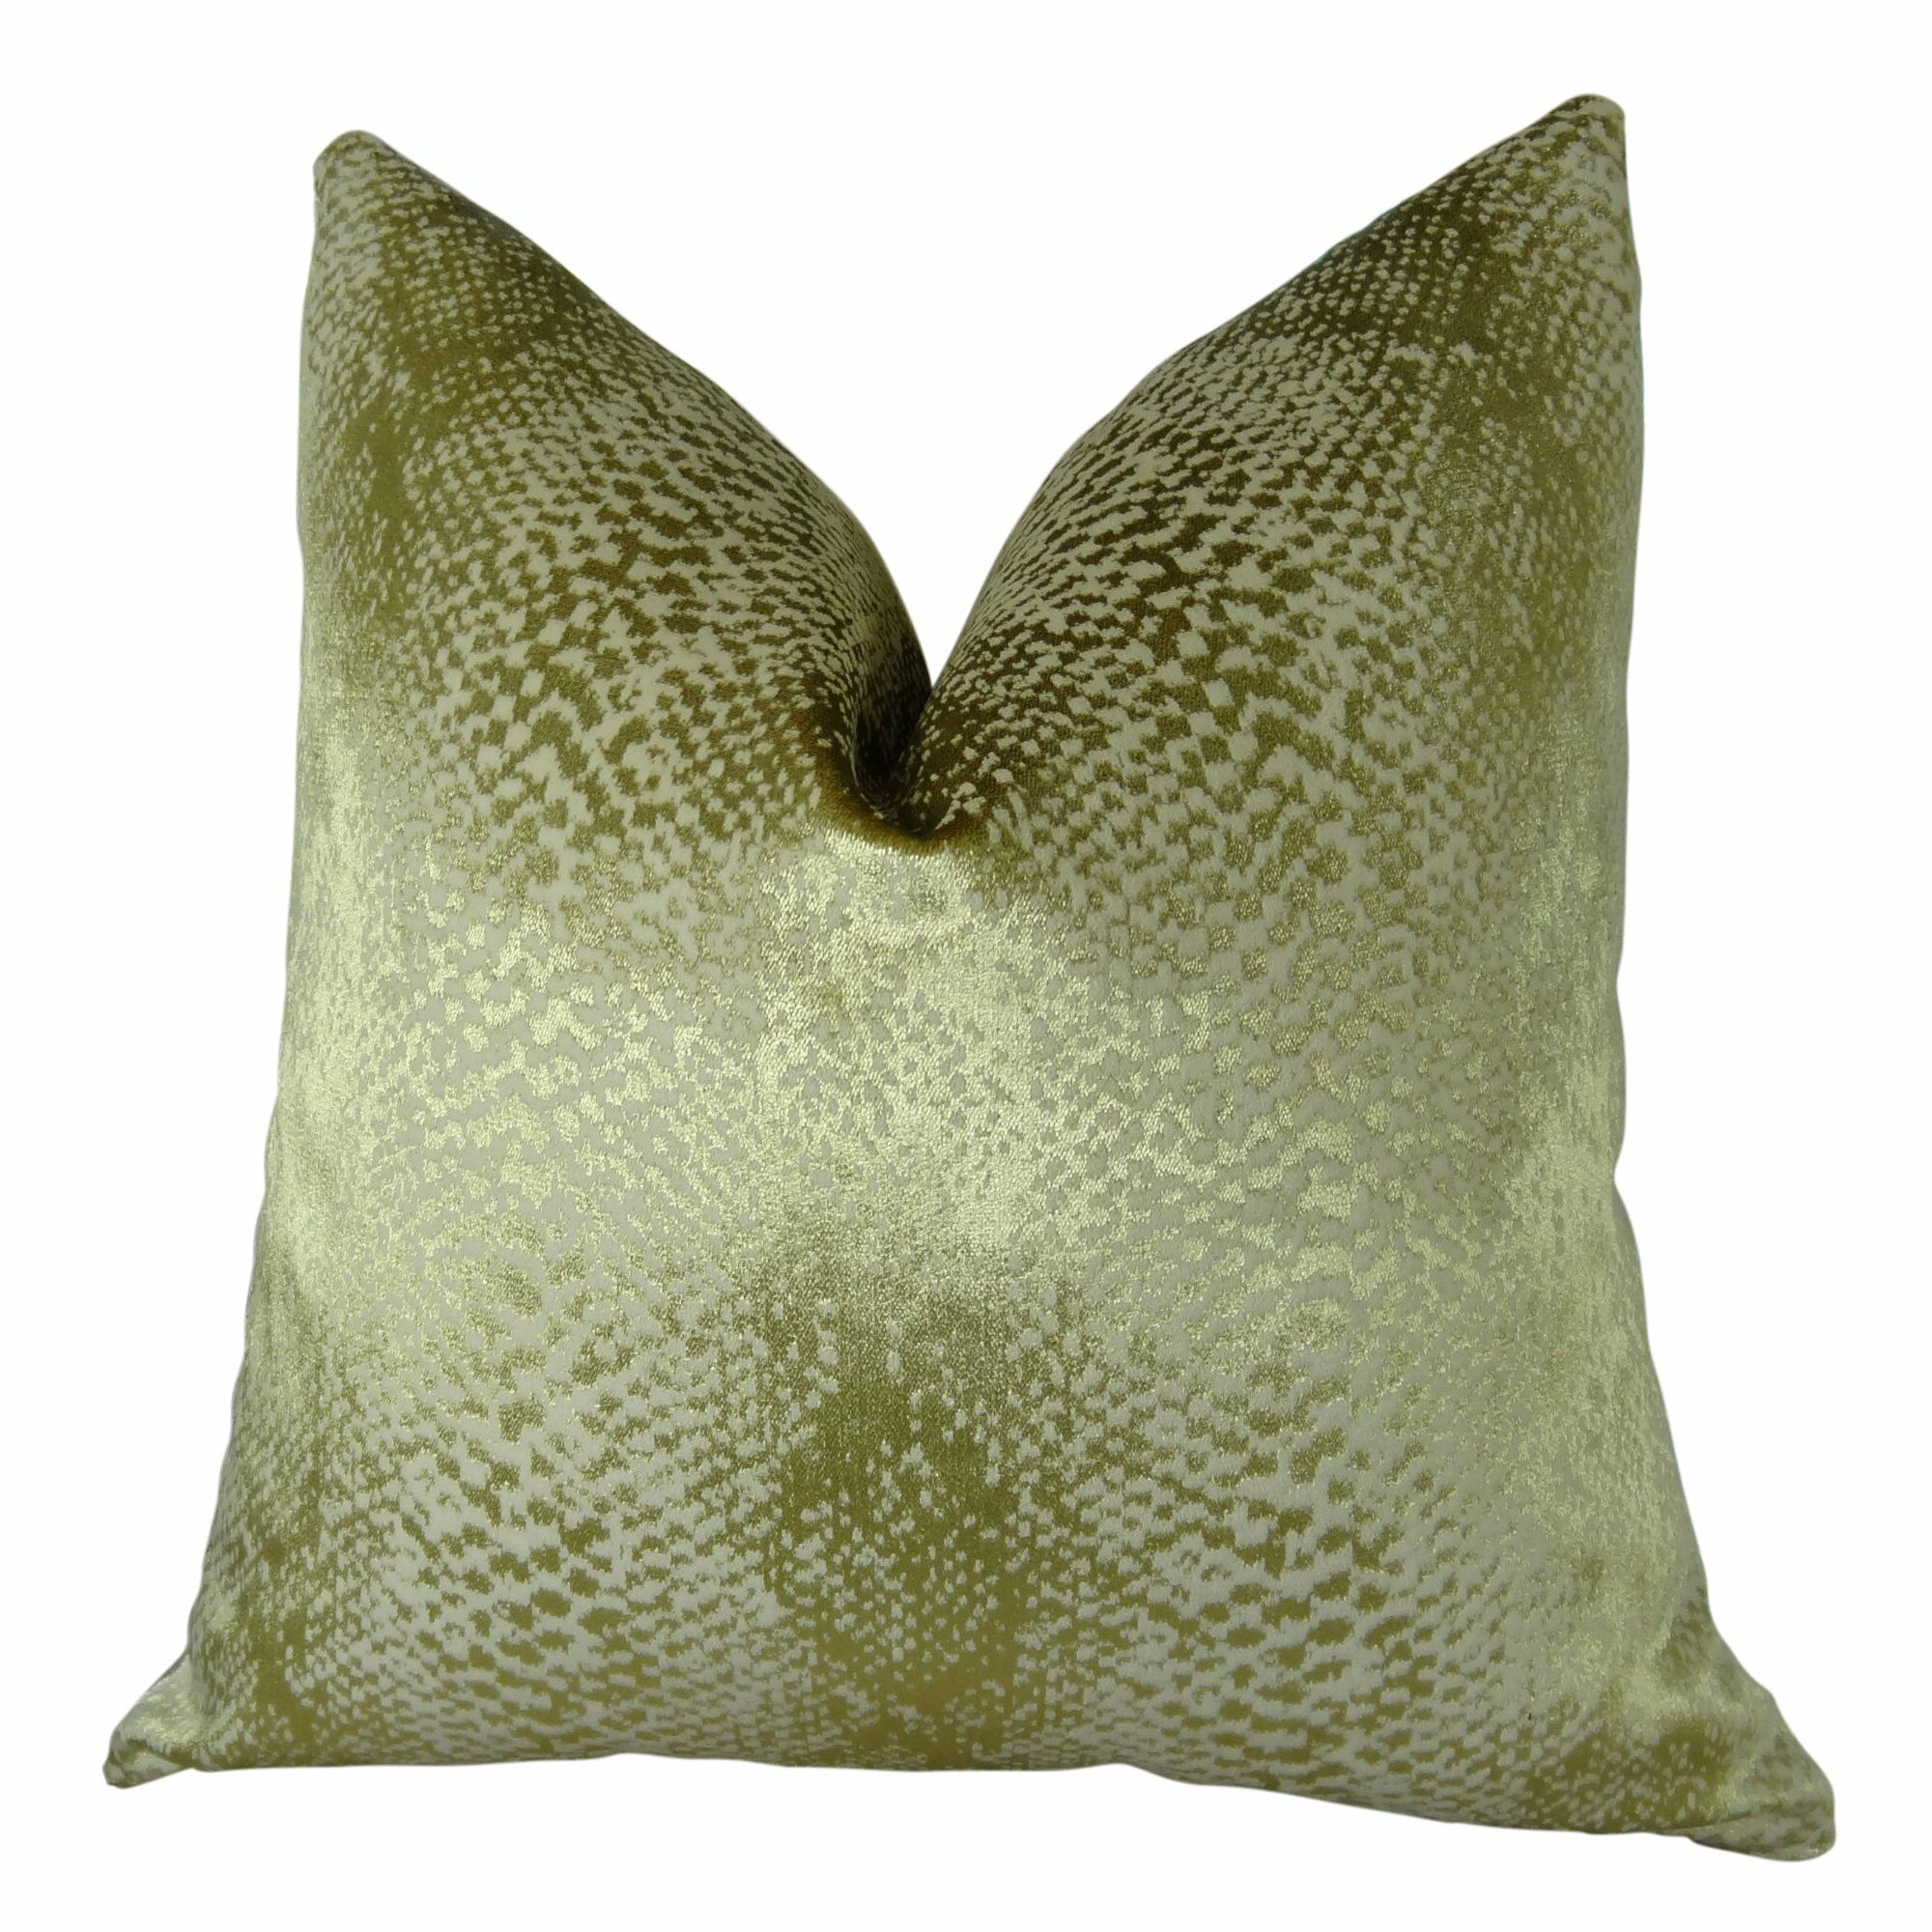 Franks Metallic Luxury Pillow Fill Material: Cover Only - No Insert, Size: 24